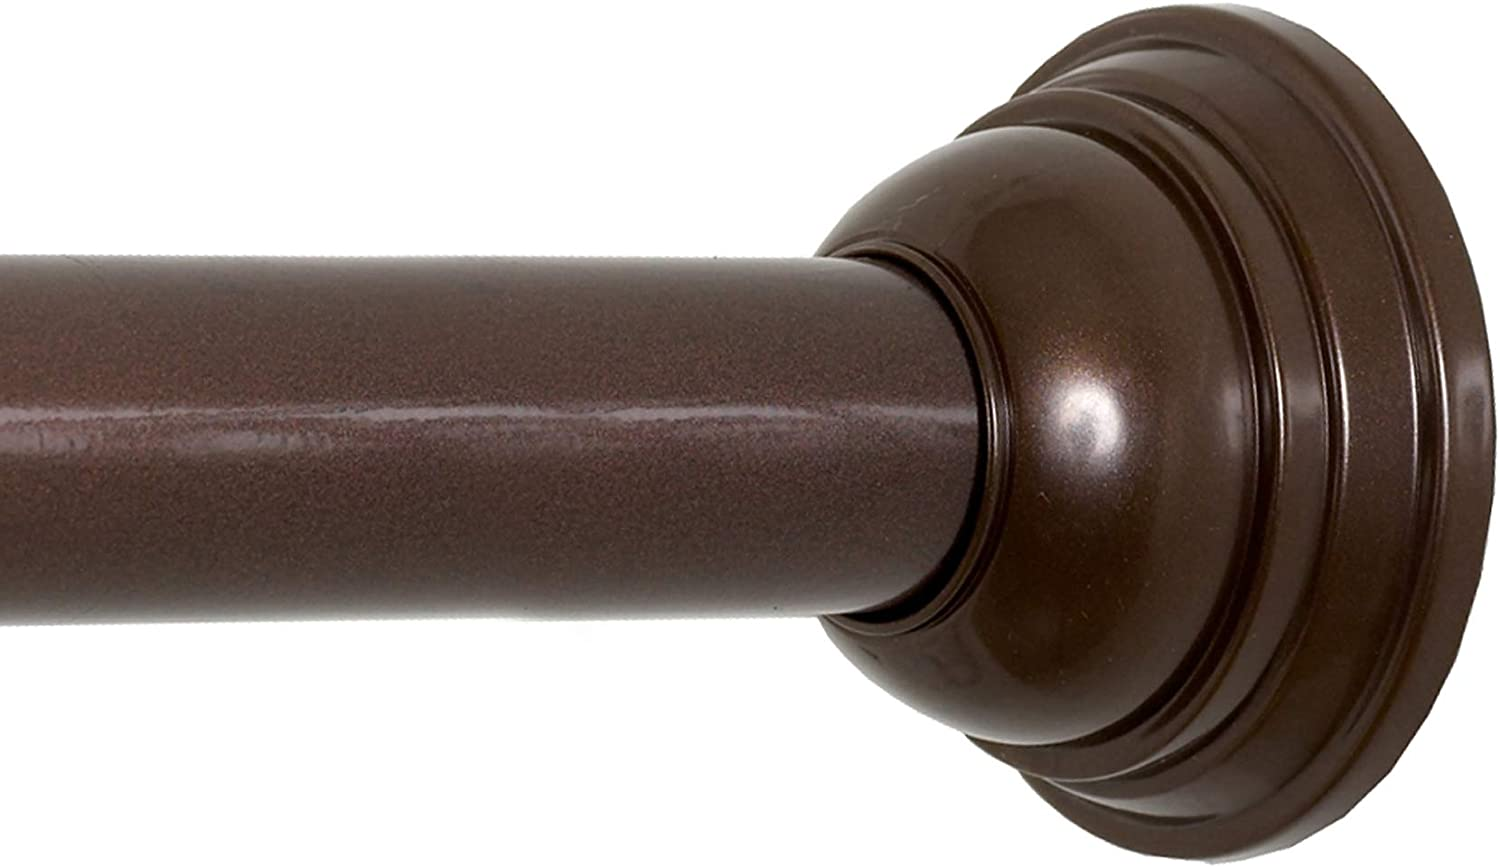 Oil Rubbed Bronze Zenna Home Decorative Tension Shower Curtain Rod 44 to 72 Inches